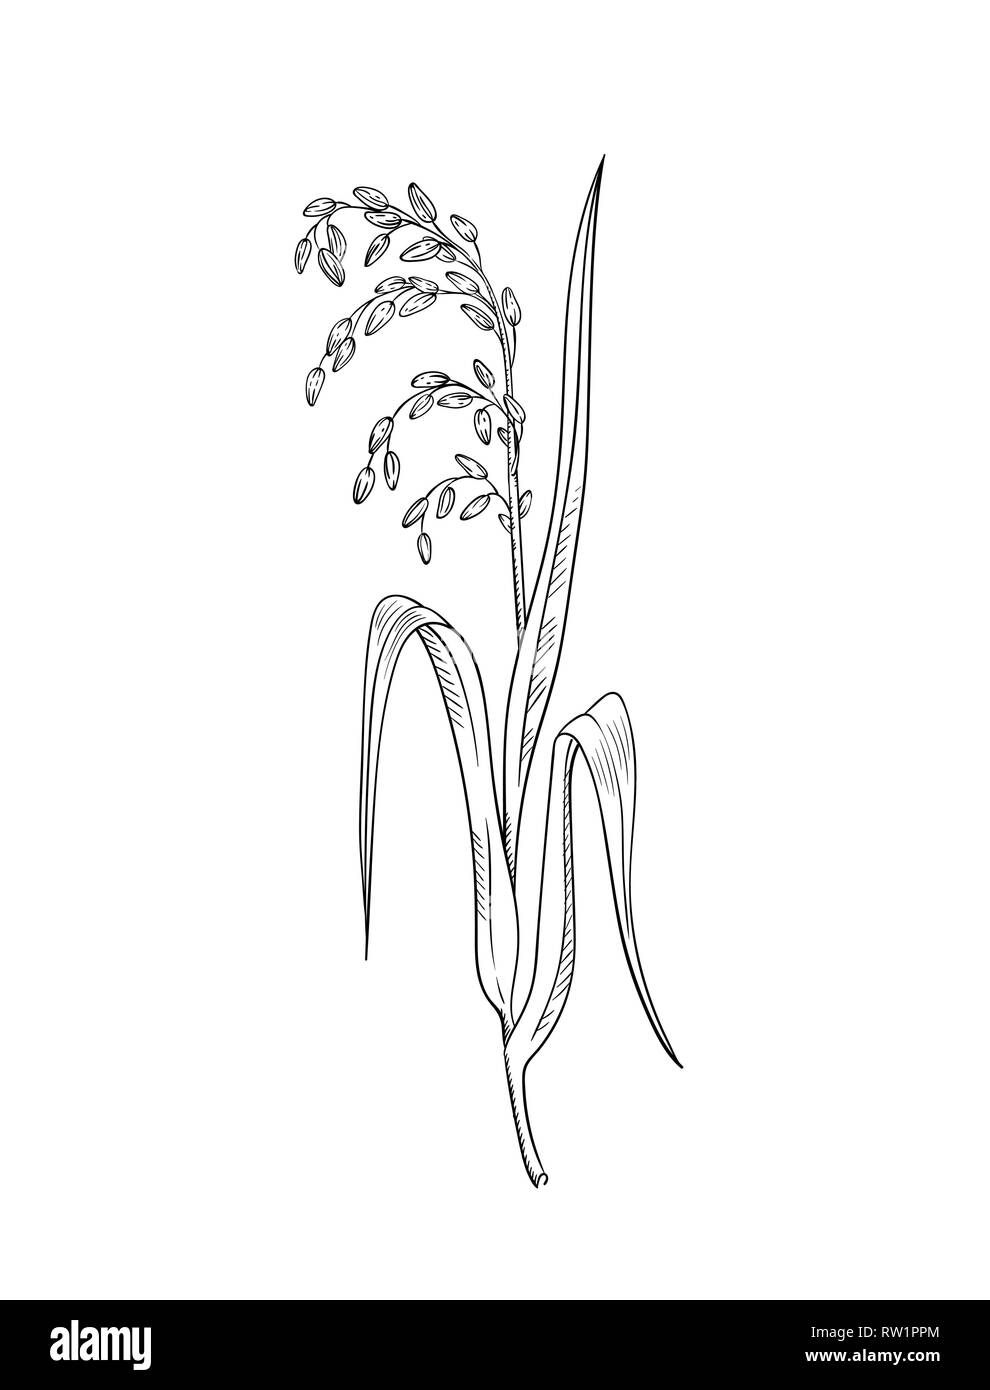 hight resolution of rice plant botanical illustration vector sketch of rice twig with leaves and earof ripe grains isolated